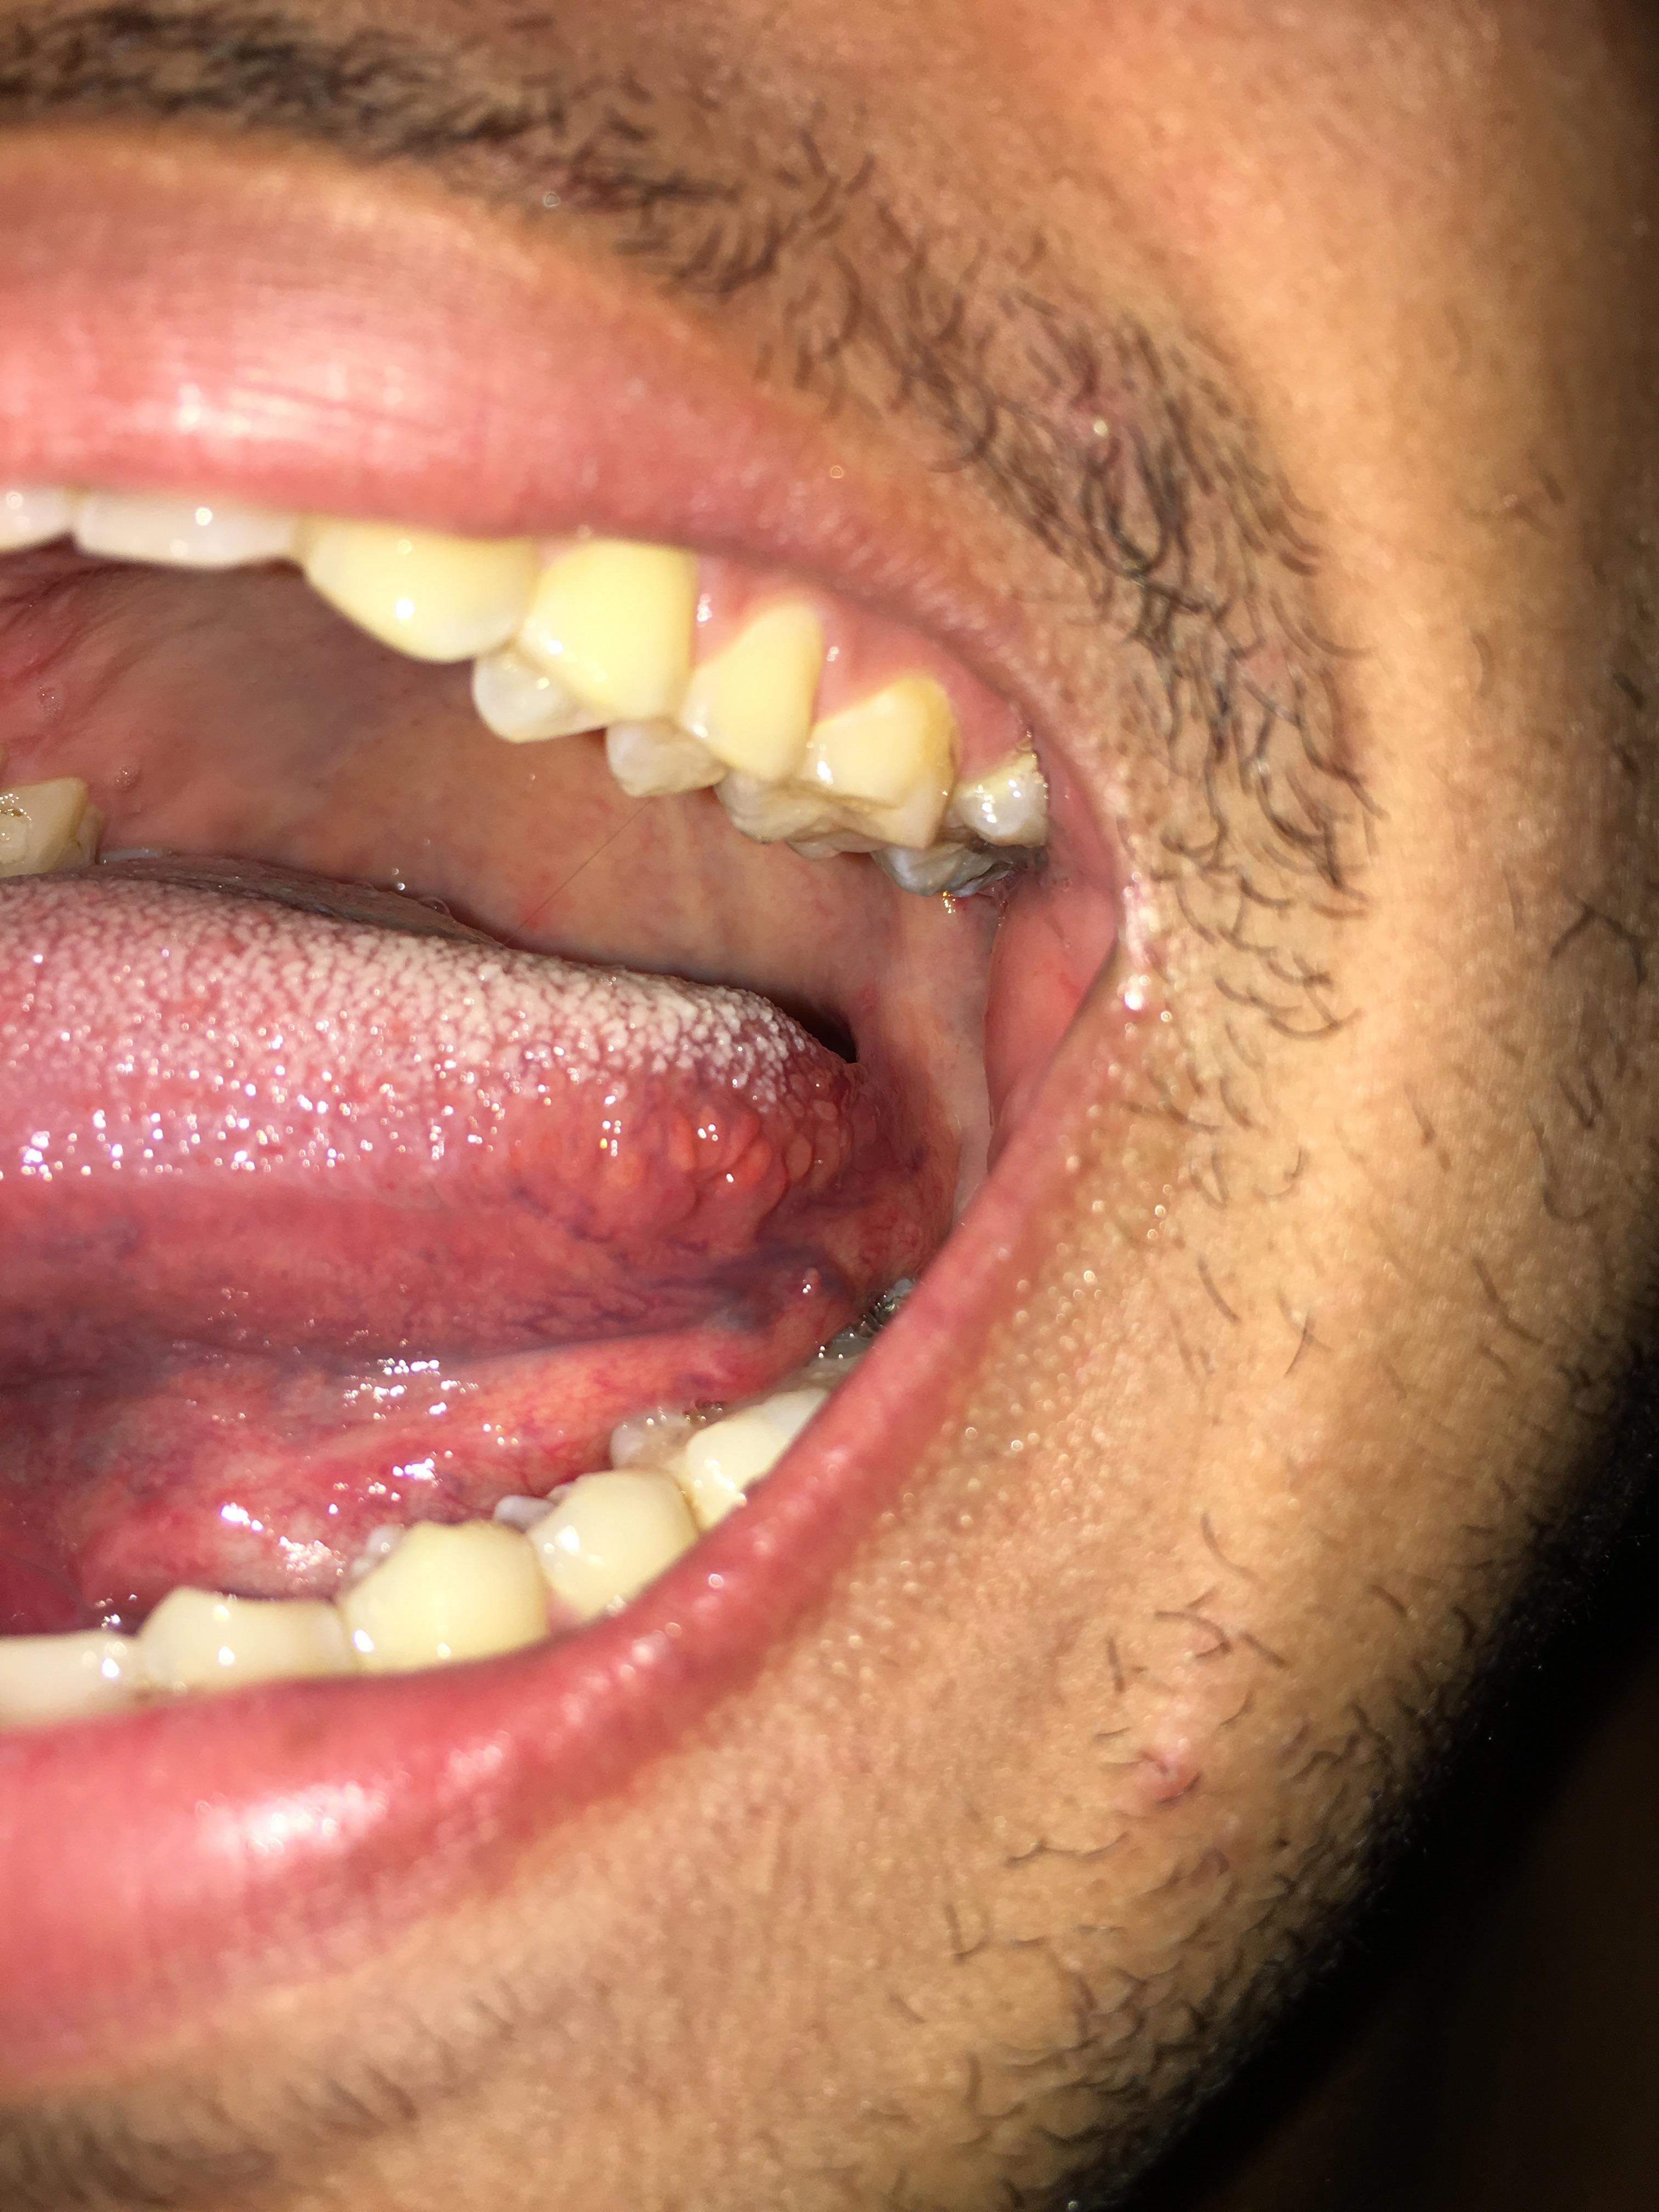 Hpv under tongue treatment. Hpv under tongue reddit